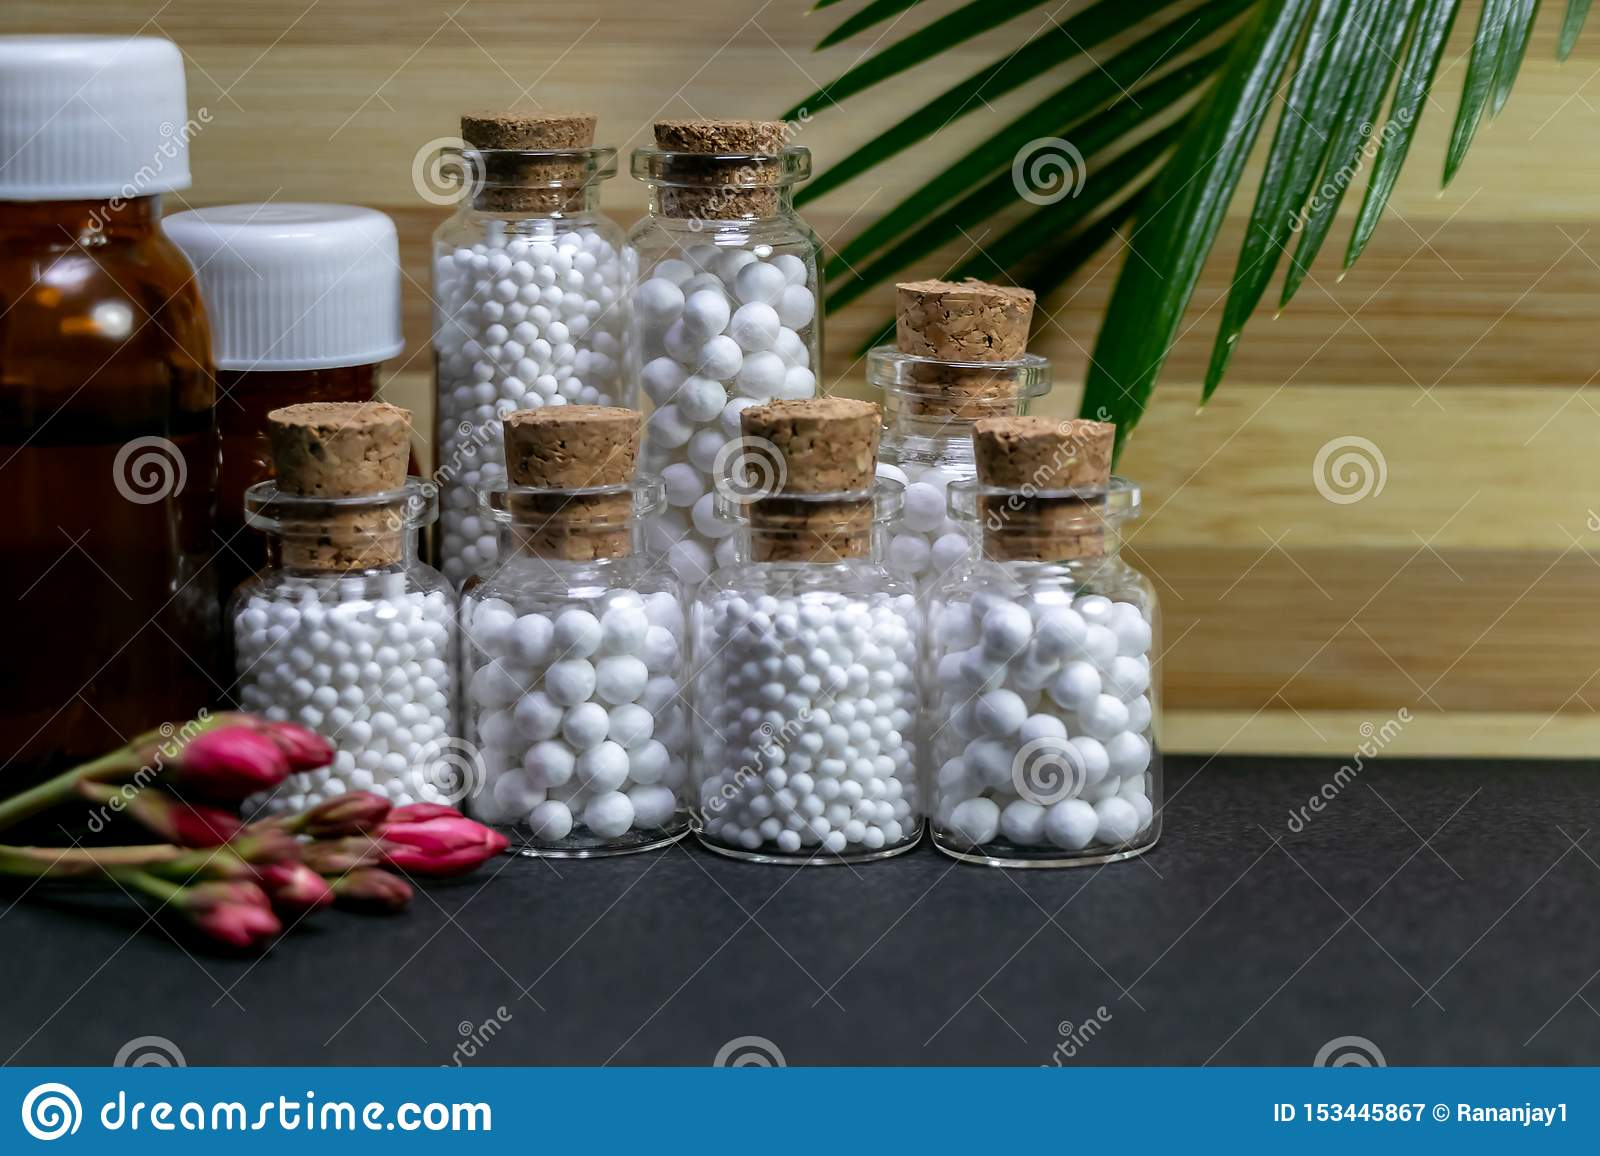 51 779 Homeopathy Photos Free Royalty Free Stock Photos From Dreamstime